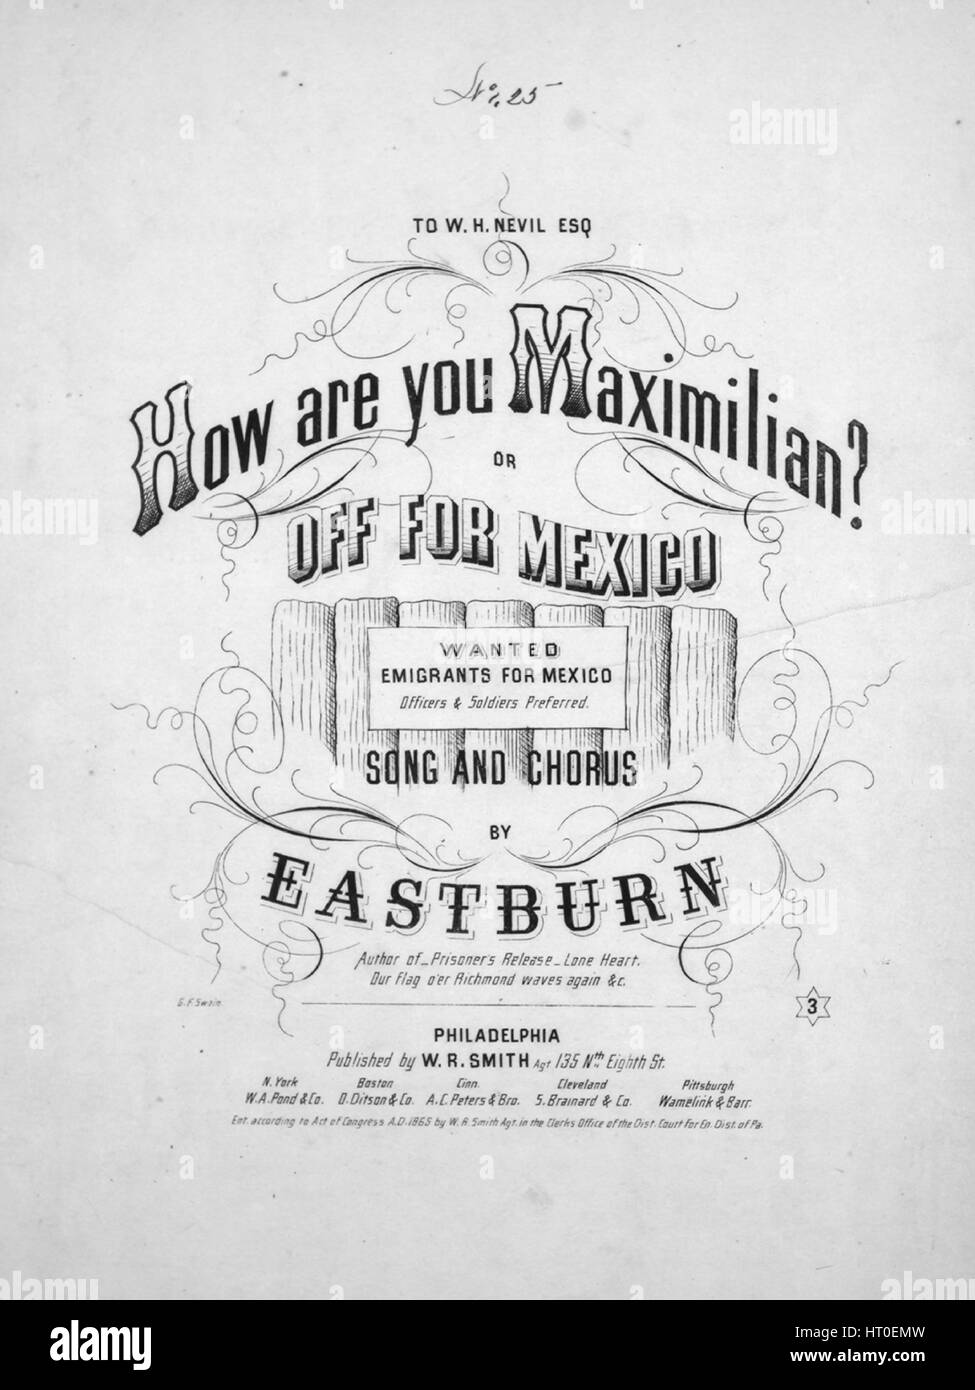 Sheet music cover image of the song 'How are you Maximilian? or Off For Mexico Song and Chorus', with original - Stock Image